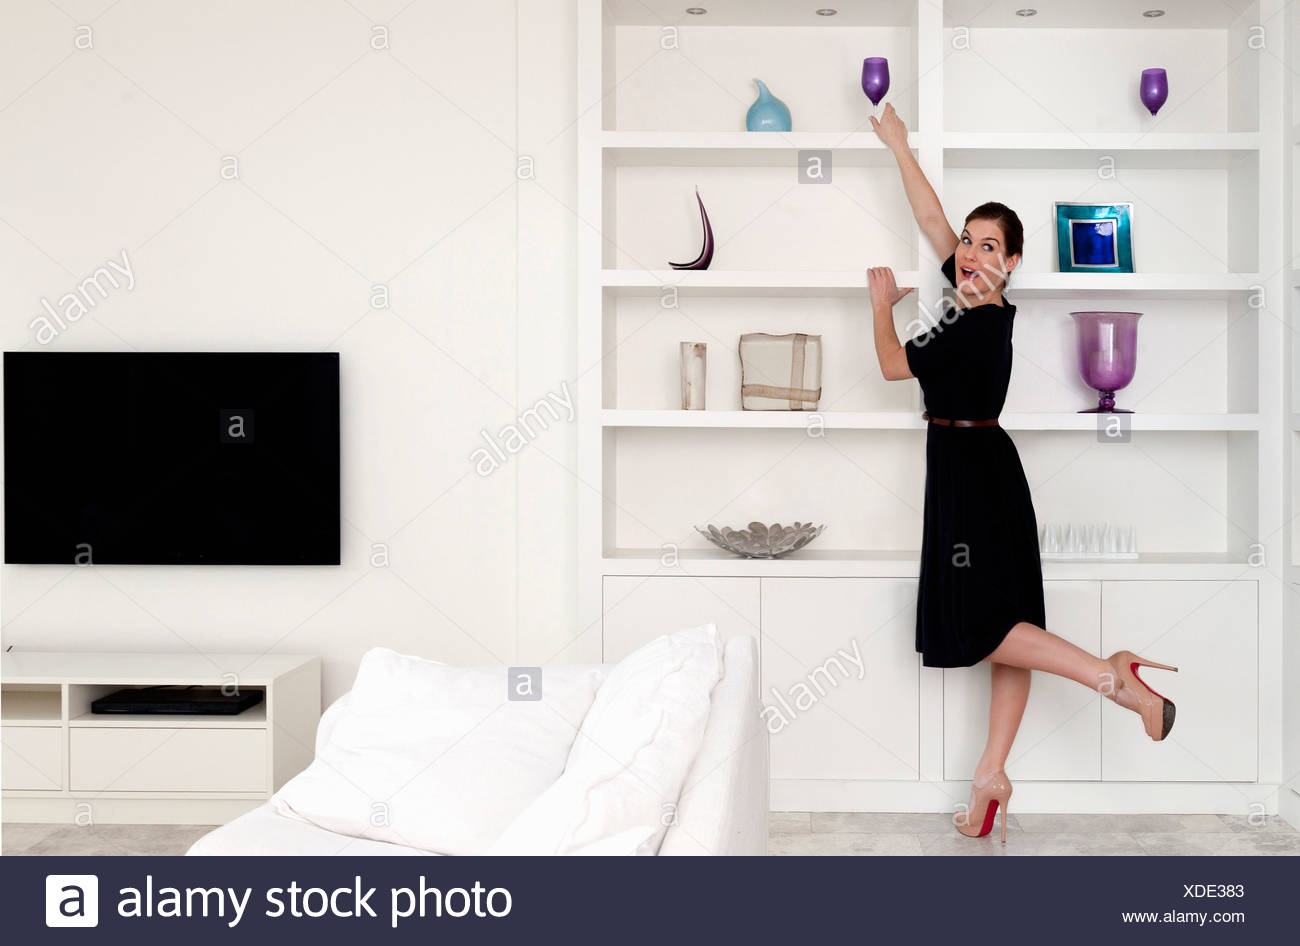 Young woman reaching for wine glass on shelf in living room - Stock Image